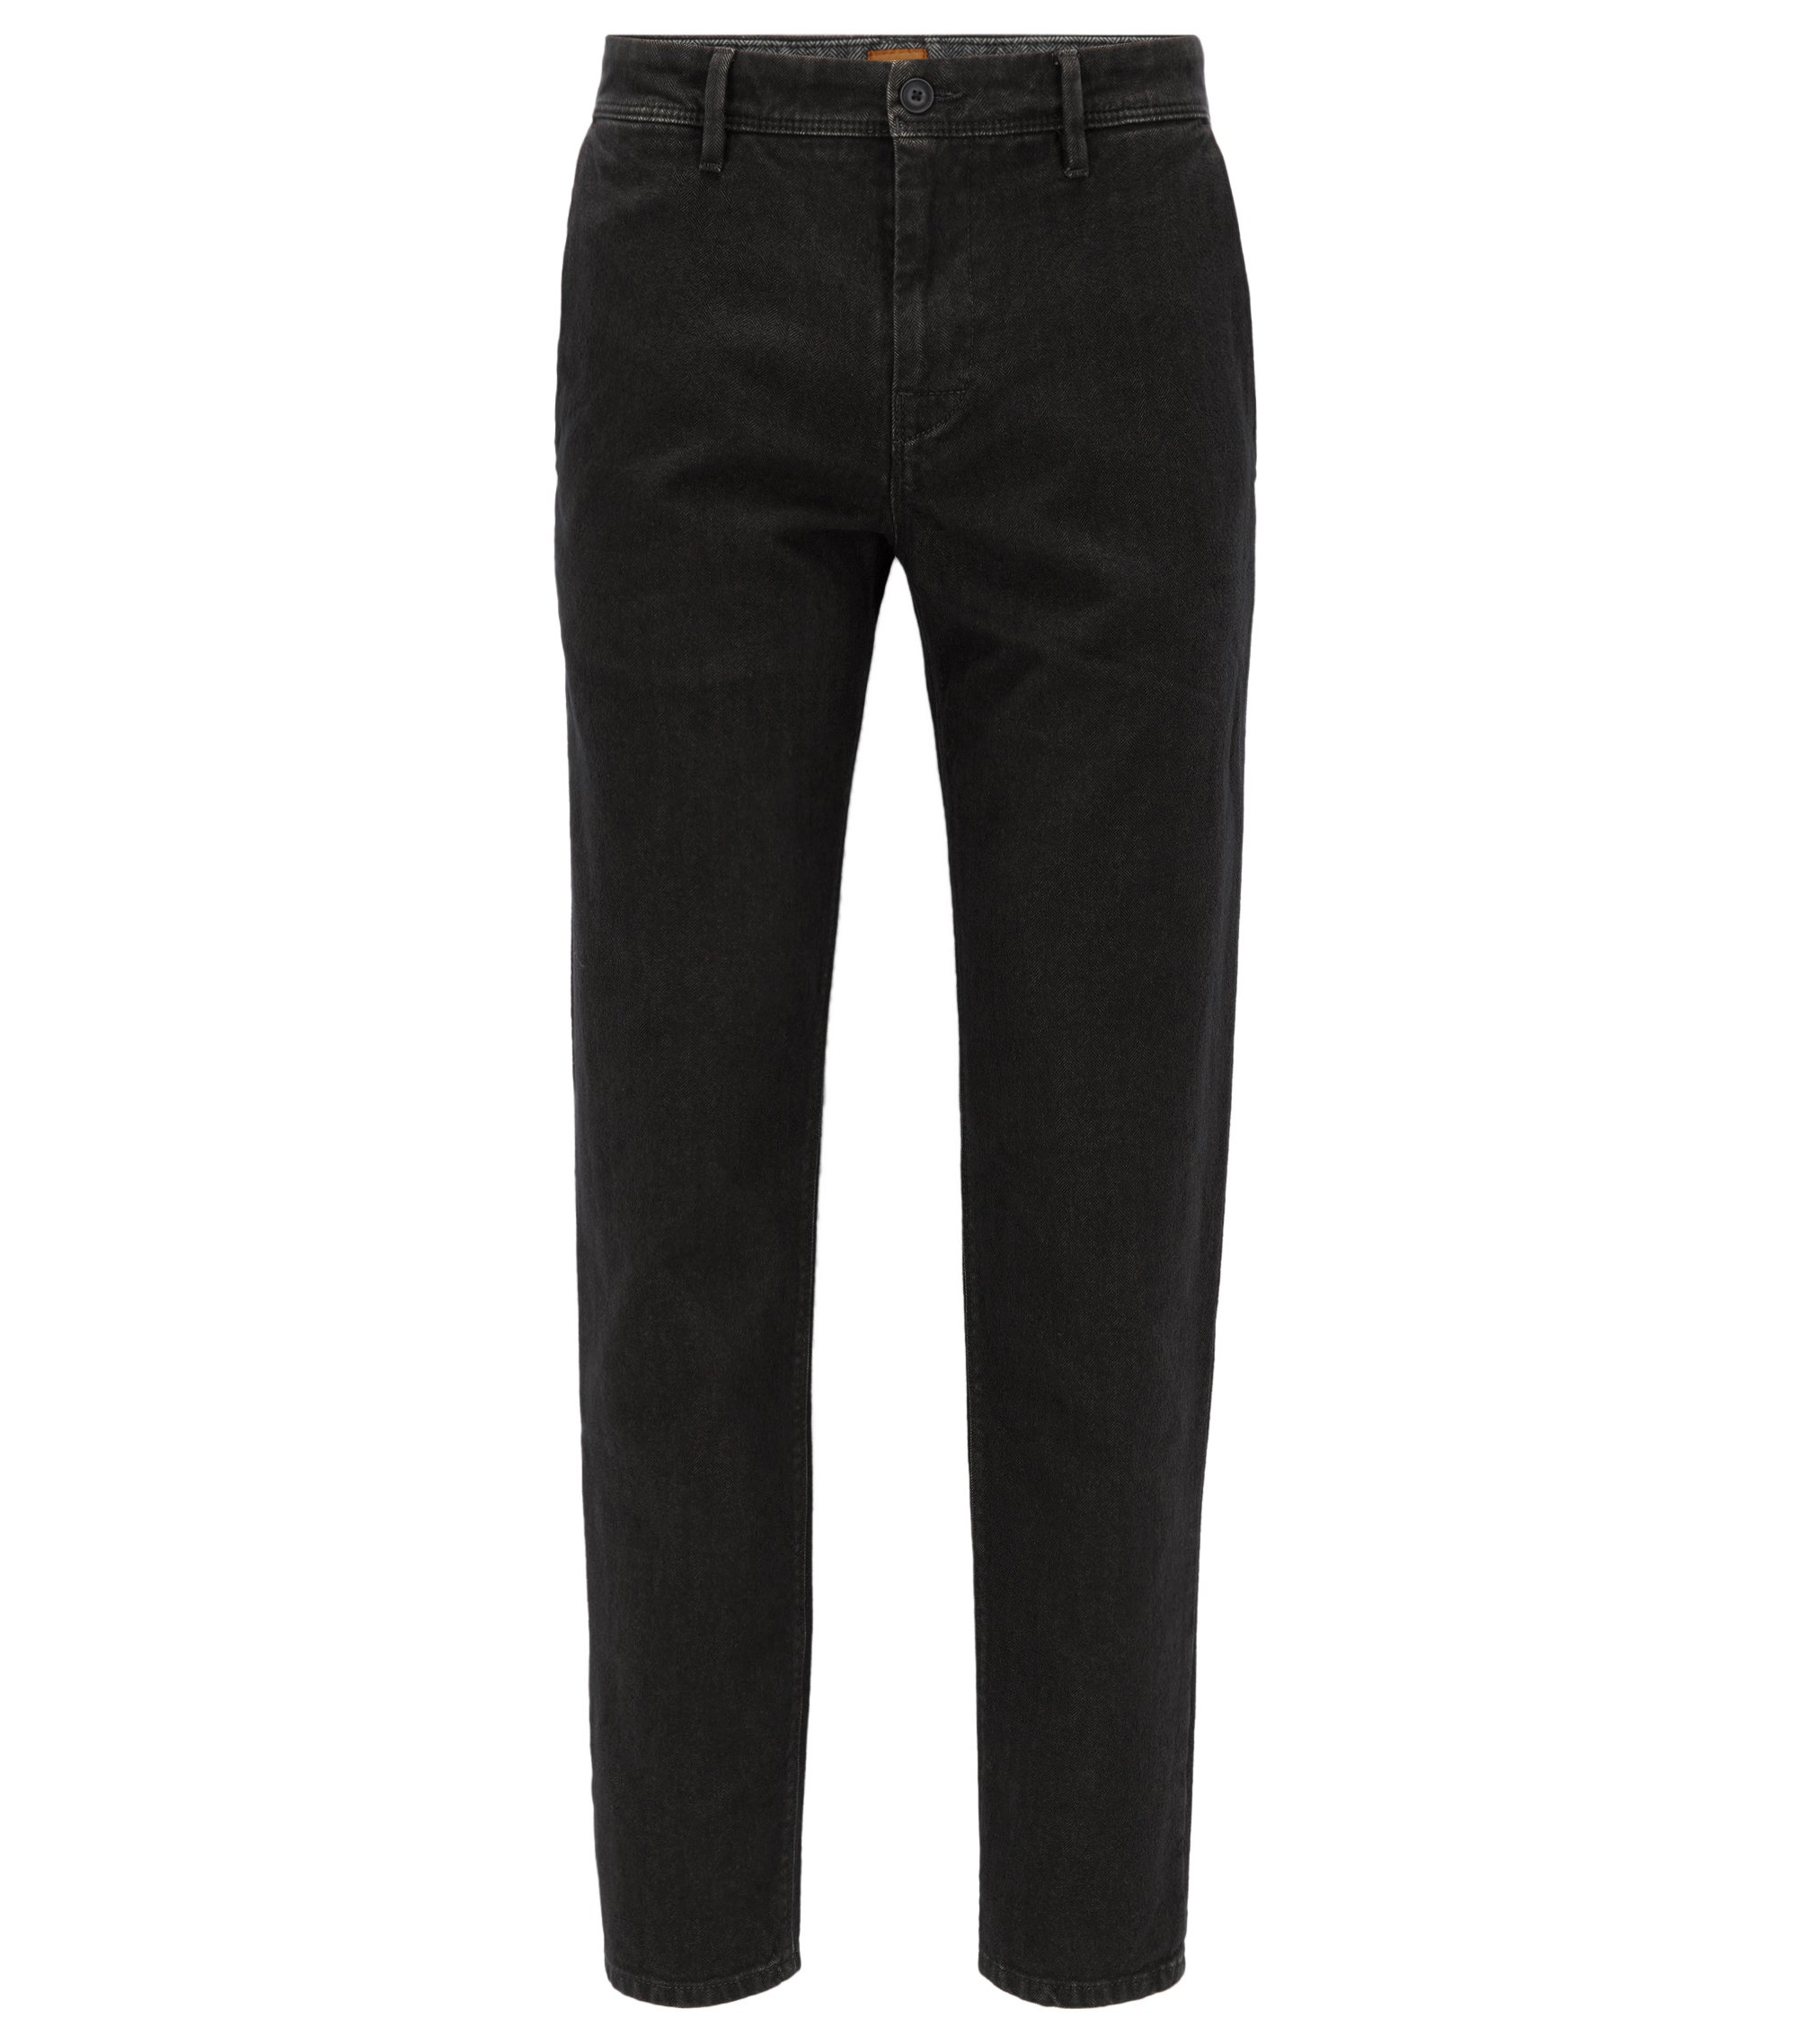 Pantalon Tapered Fit en coton à chevrons, Noir